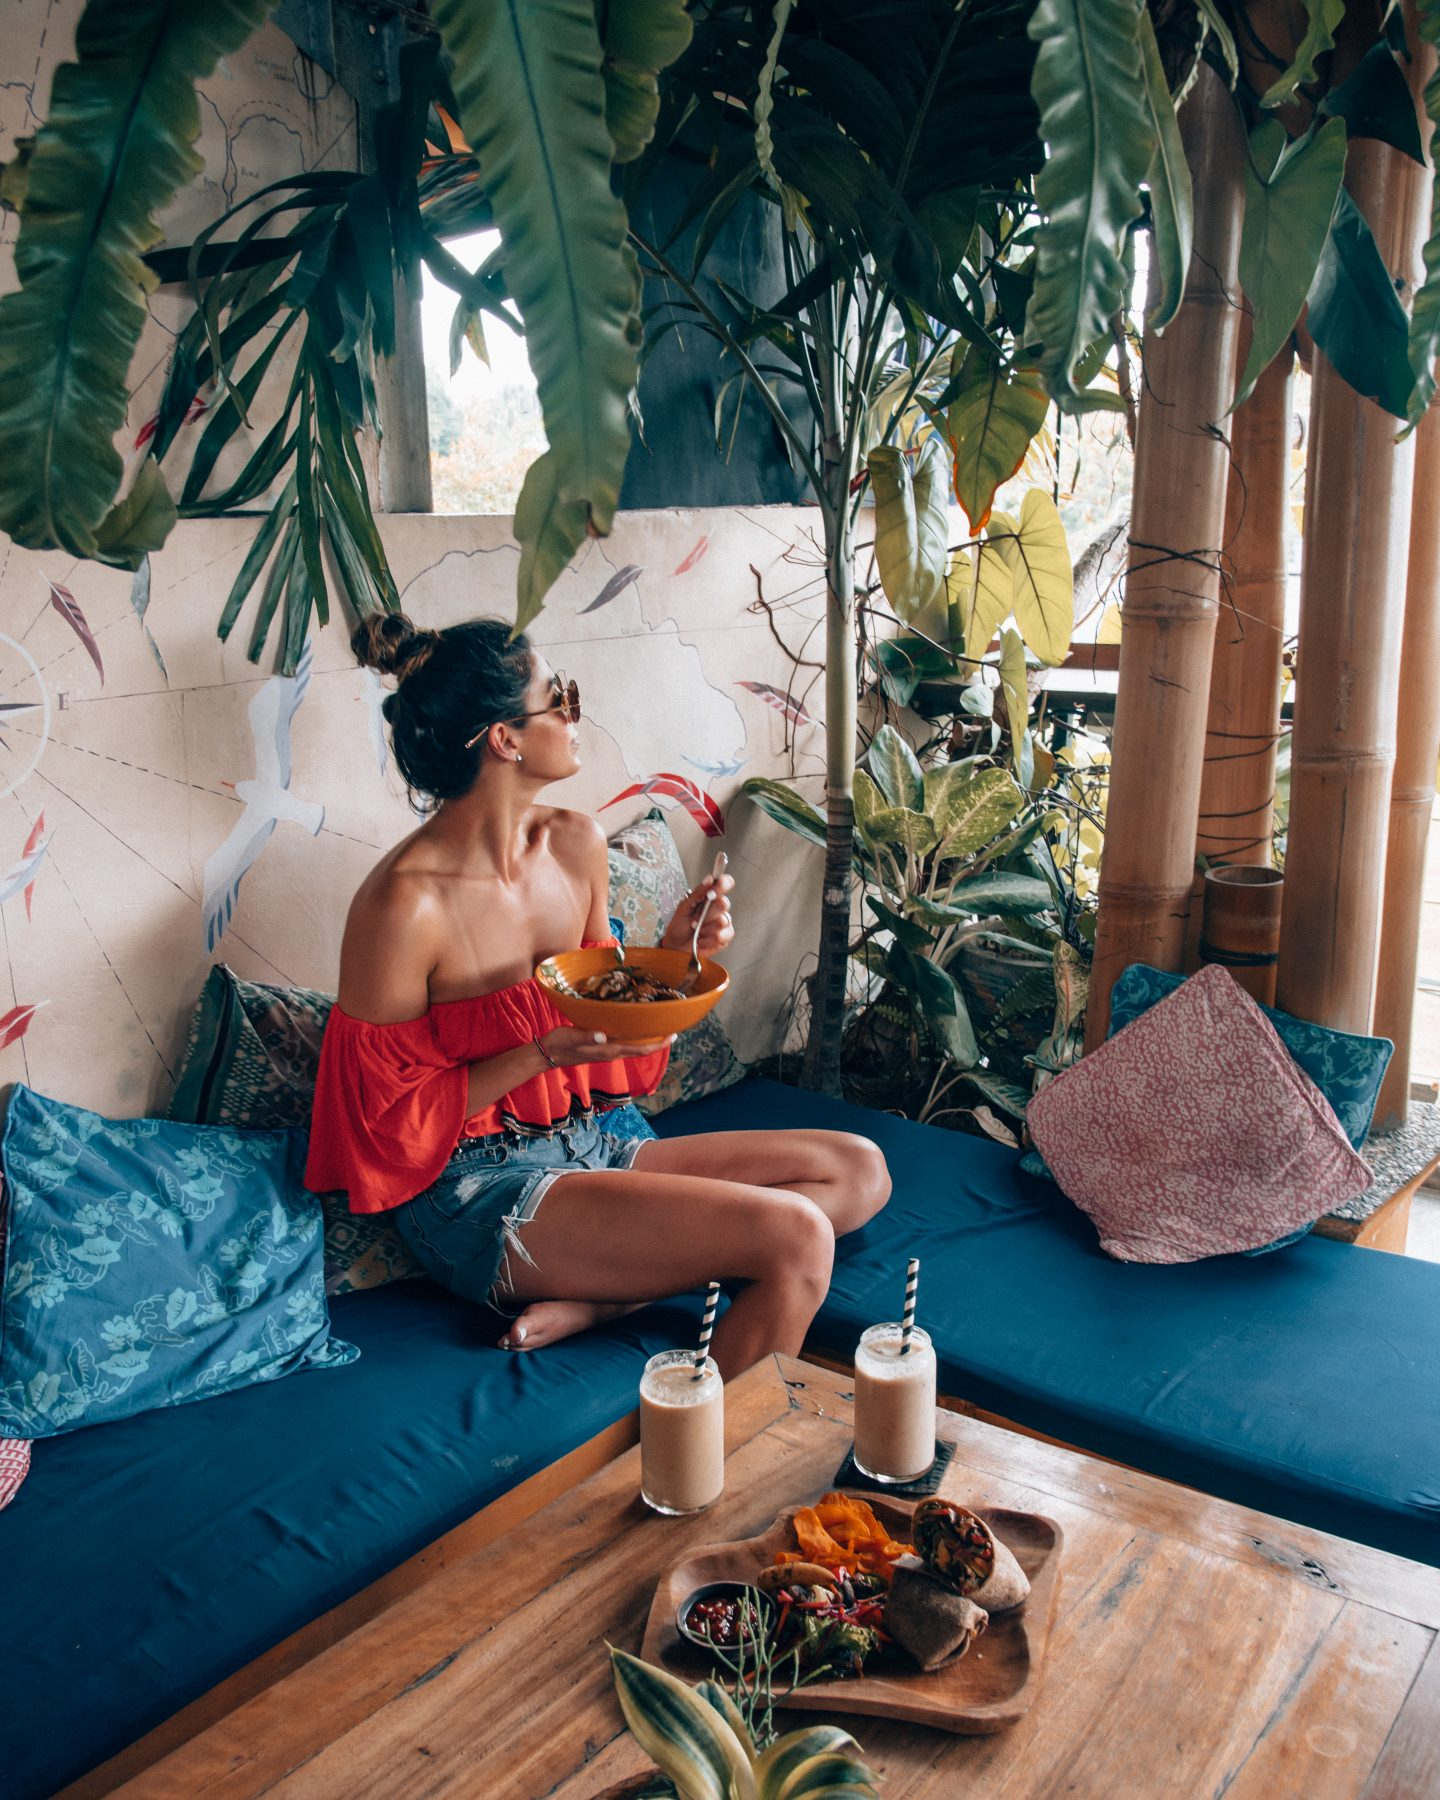 A woman eating in a cafe in Bali